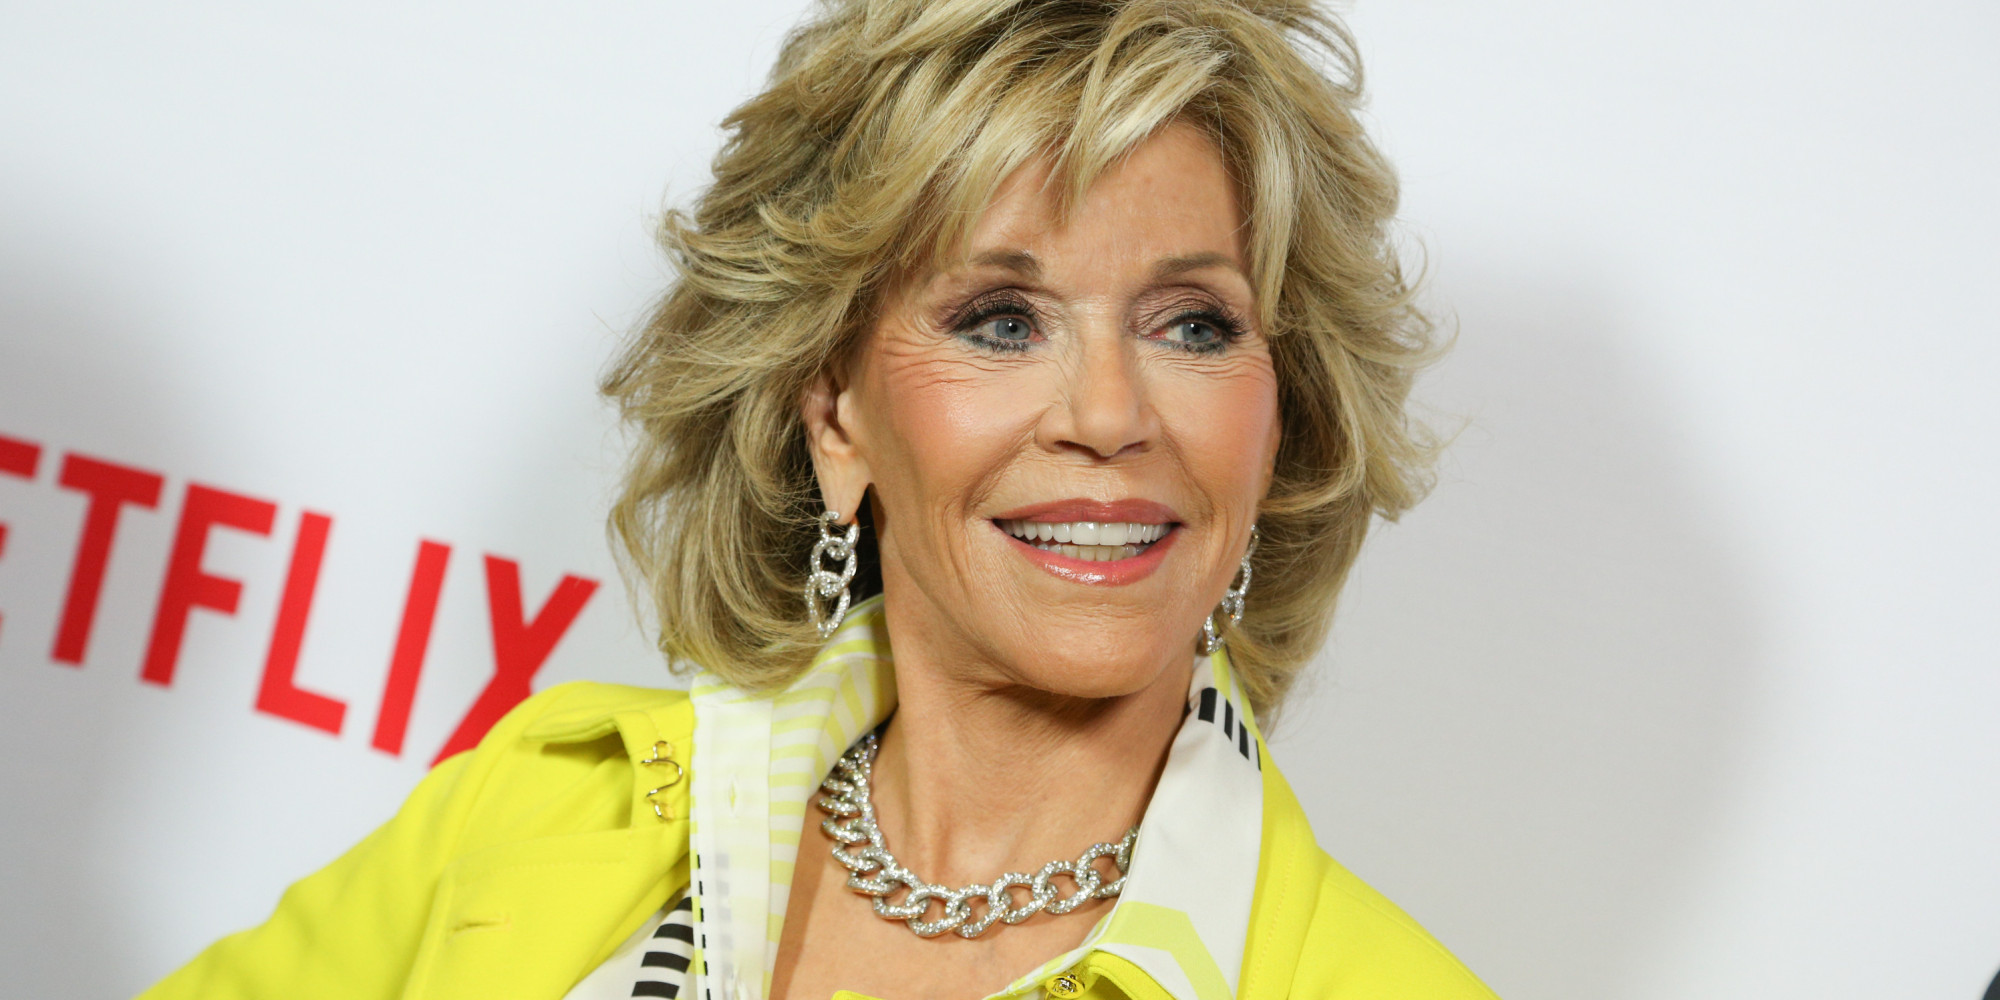 Flattering On Jane Fonda Wonder If My Virgin Hair Could Make This Work